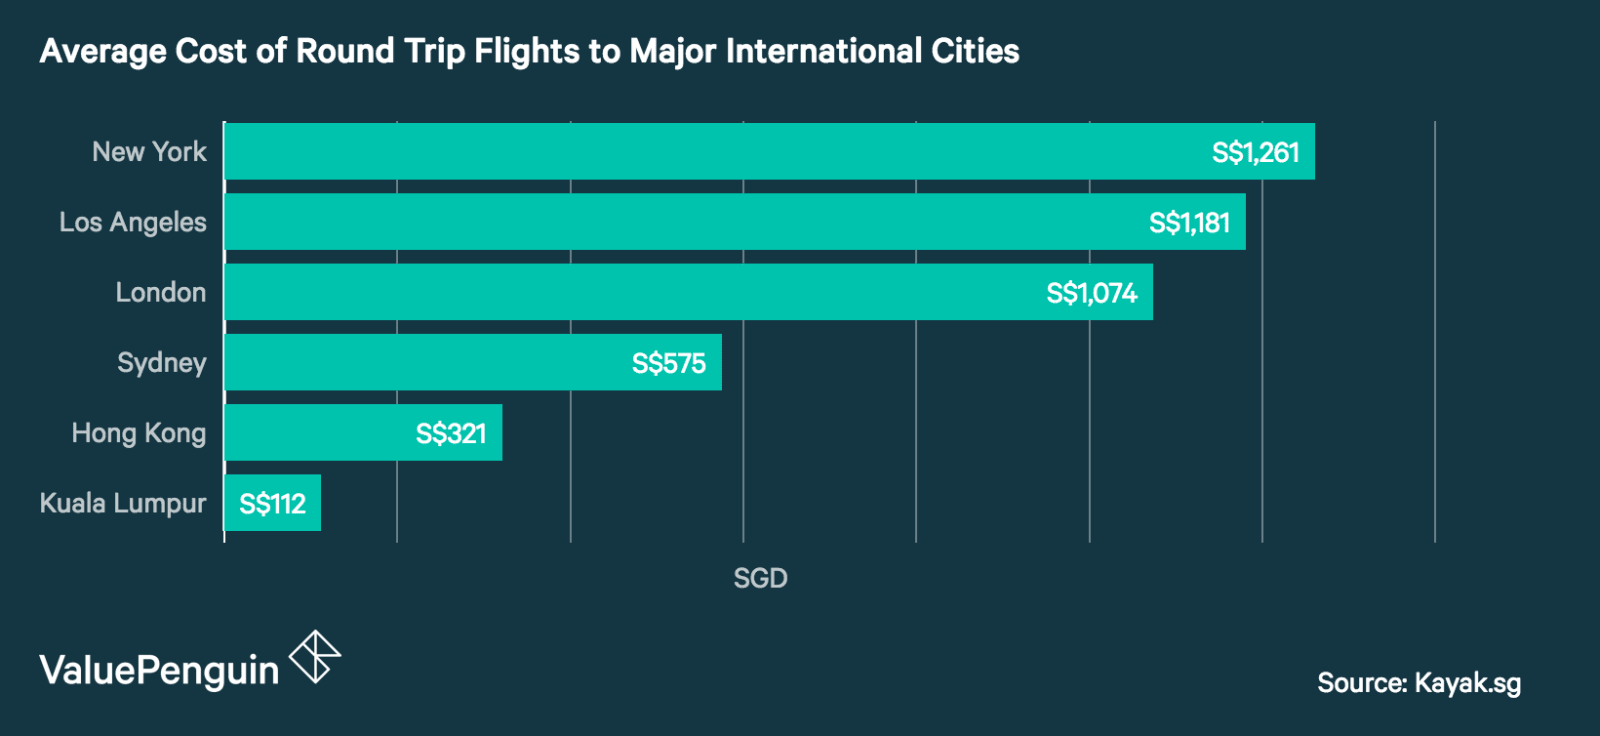 Average Cost of Round Trip Flights to Major International Cities